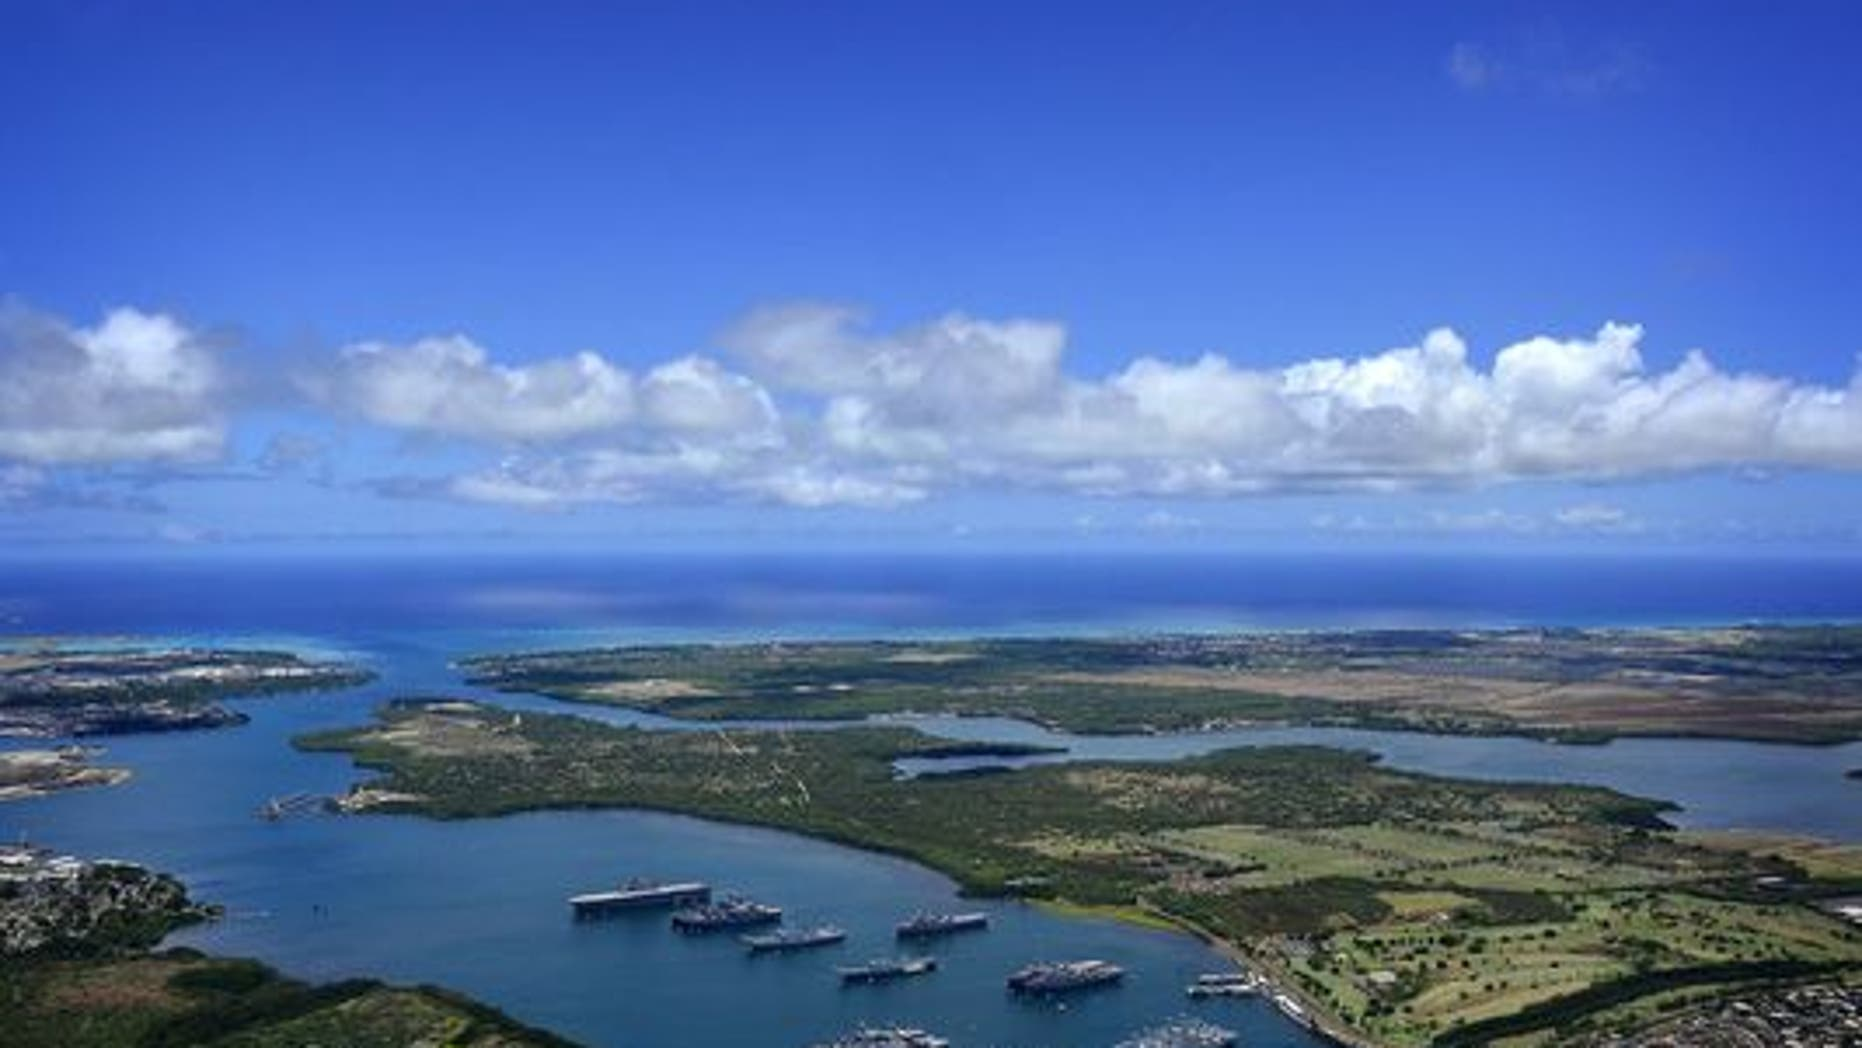 Navy ships are anchored in the waters of Joint Base Pearl Harbor-Hickam on July 14, 2011, at the entrance to the Pacific Ocean. (Credit: MC2 Daniel Barker/Navy)